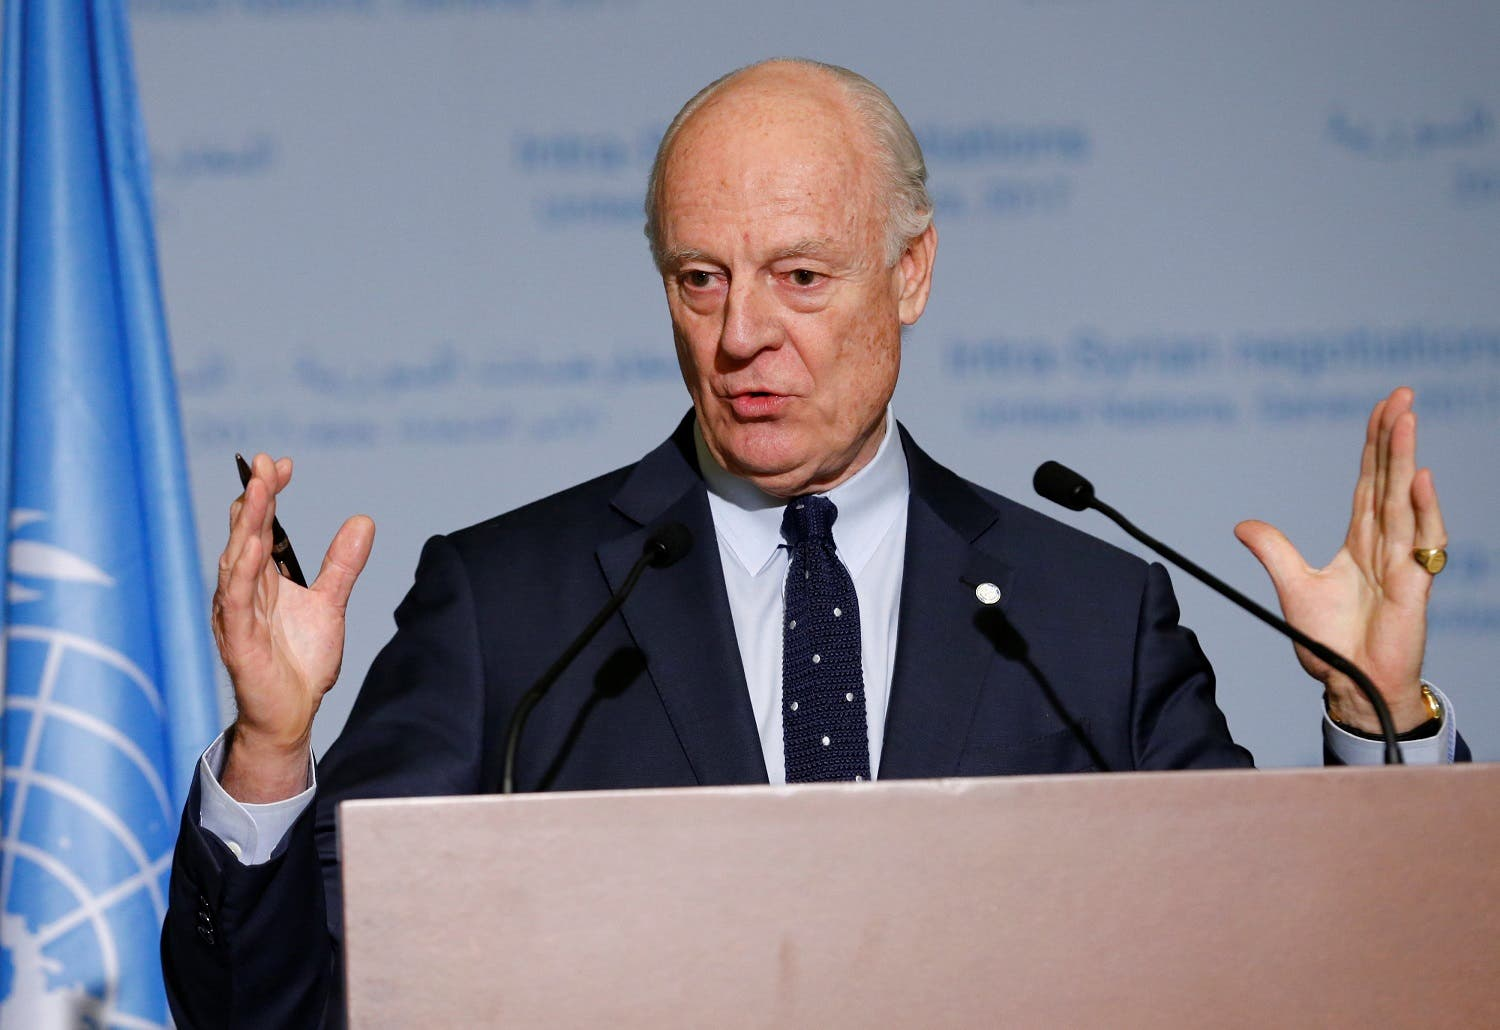 UN Special Envoy of the Secretary-General for Syria Staffan de Mistura attends a news conference after meetings during the Intra Syria talks at the European headquarters of the UN in Geneva. (Reuters)